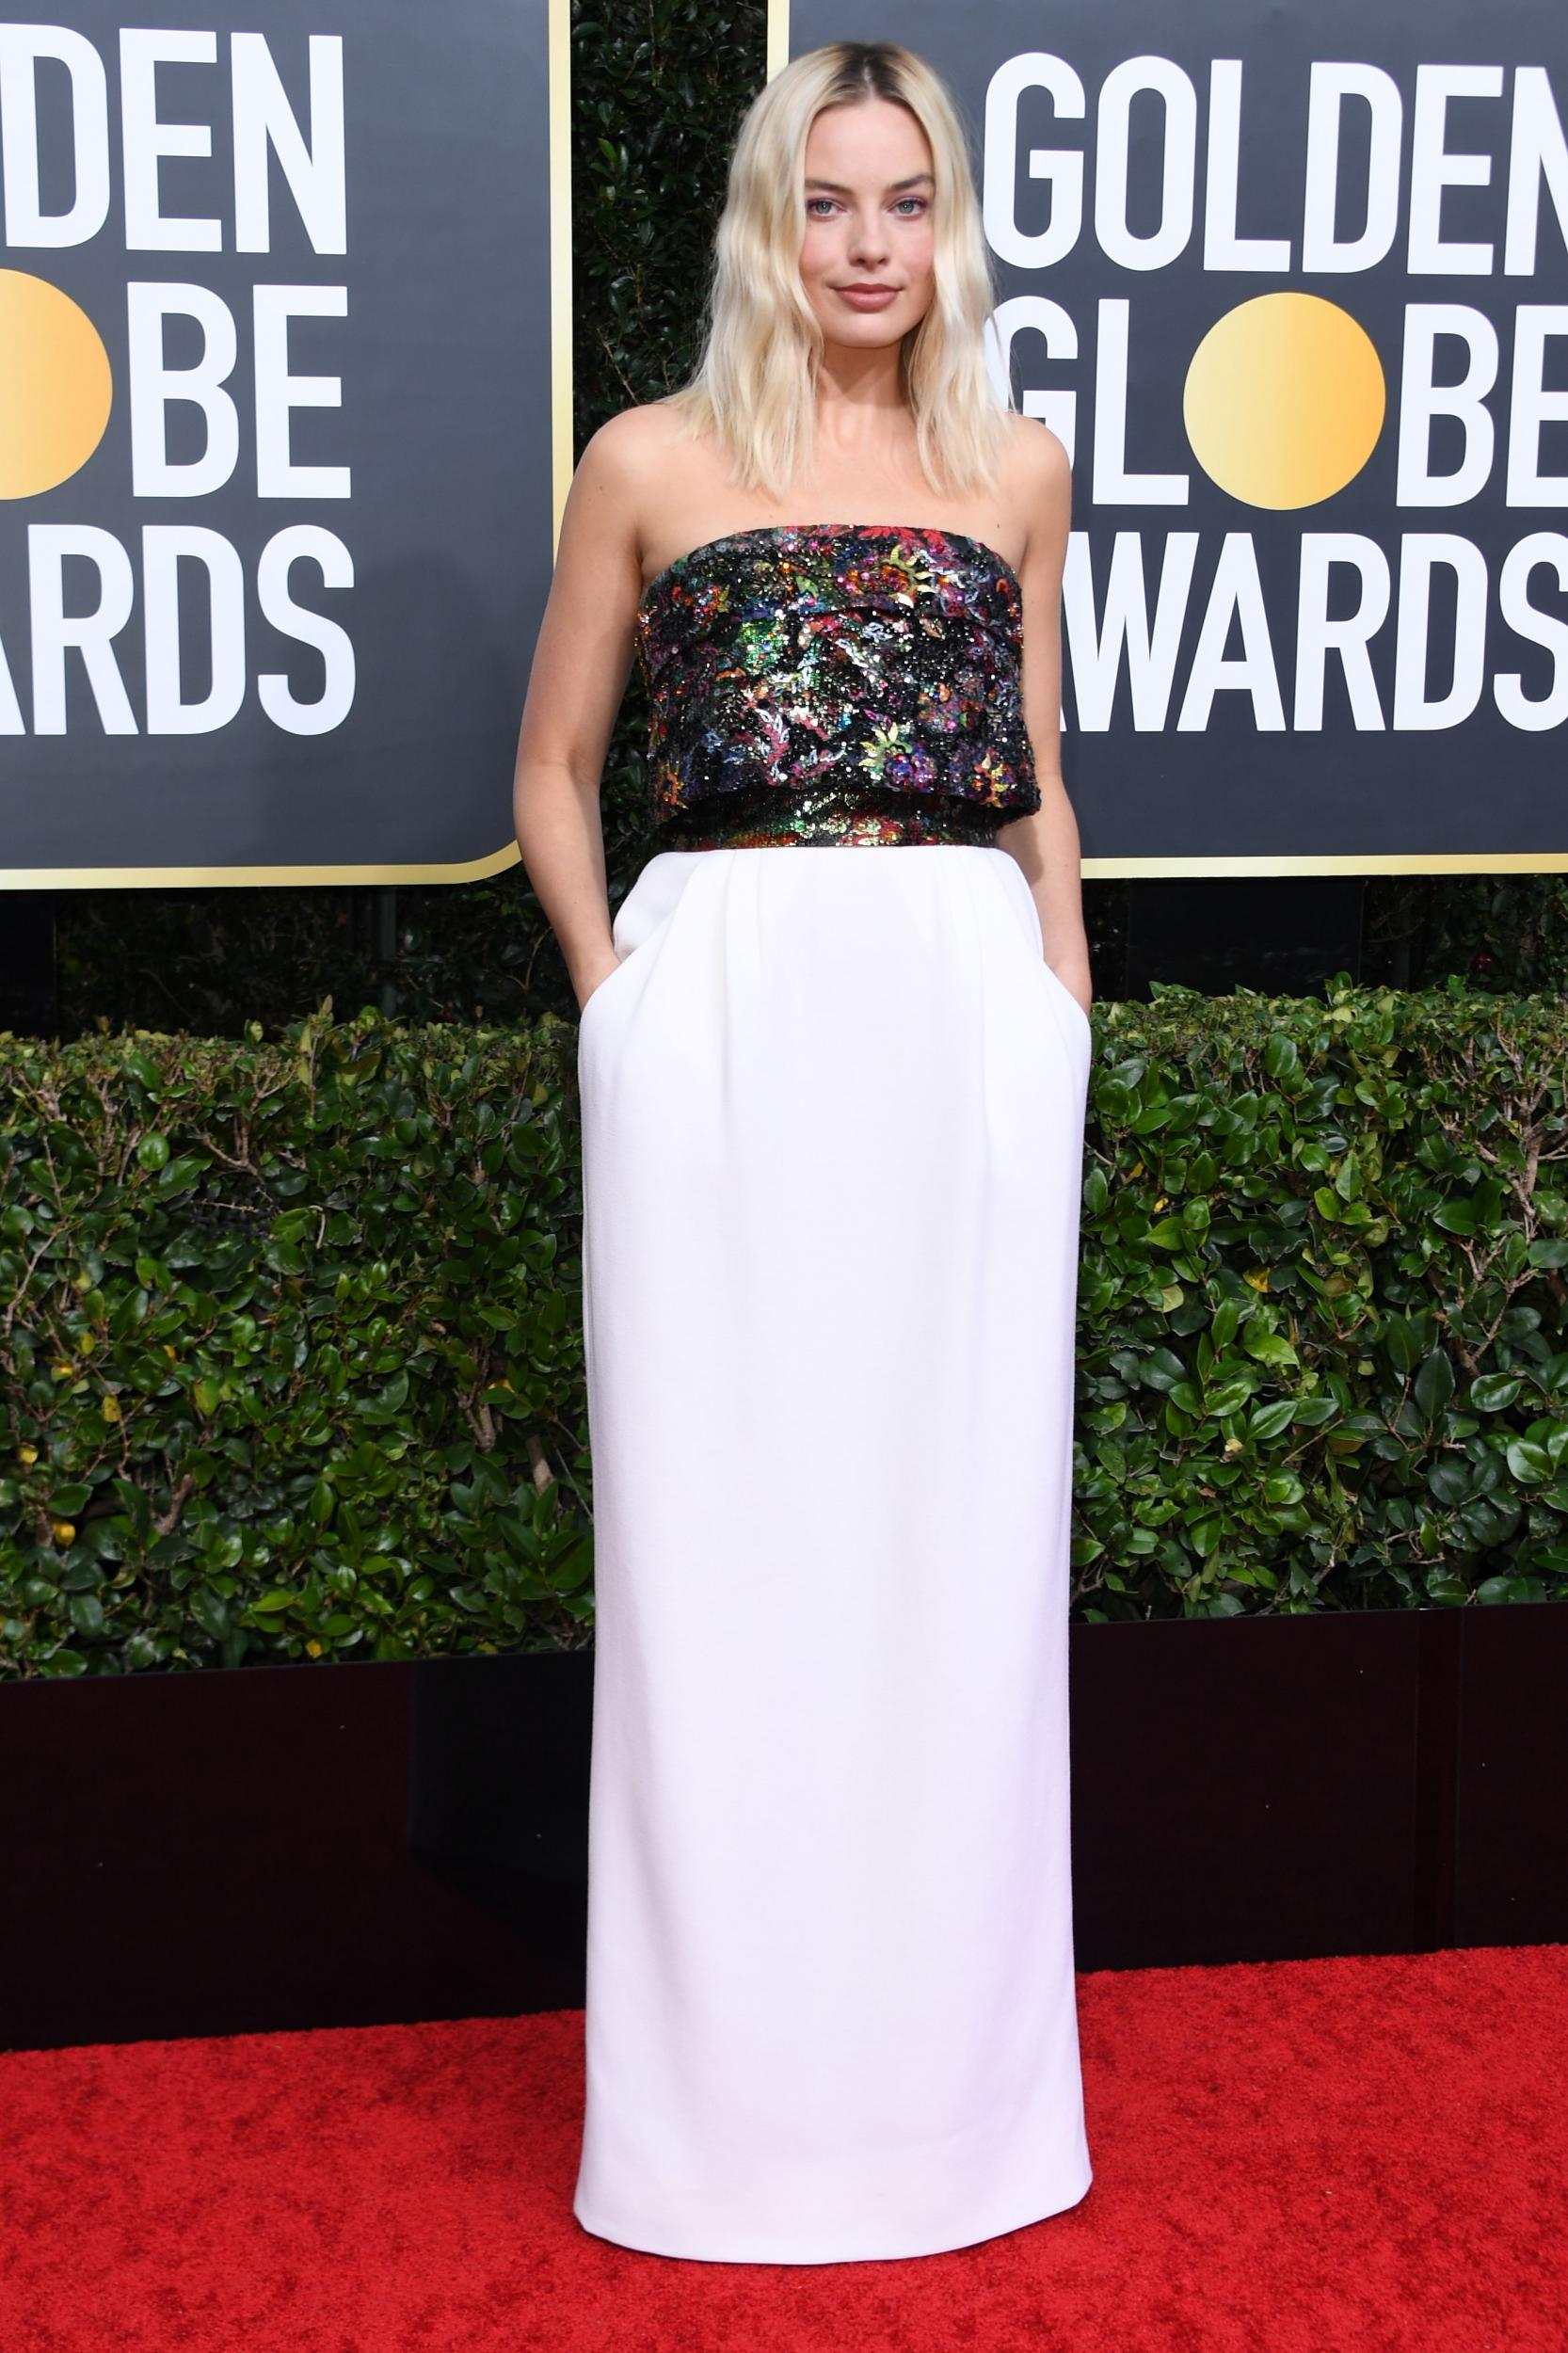 Image result for Golden Globes Margot Robbie dress